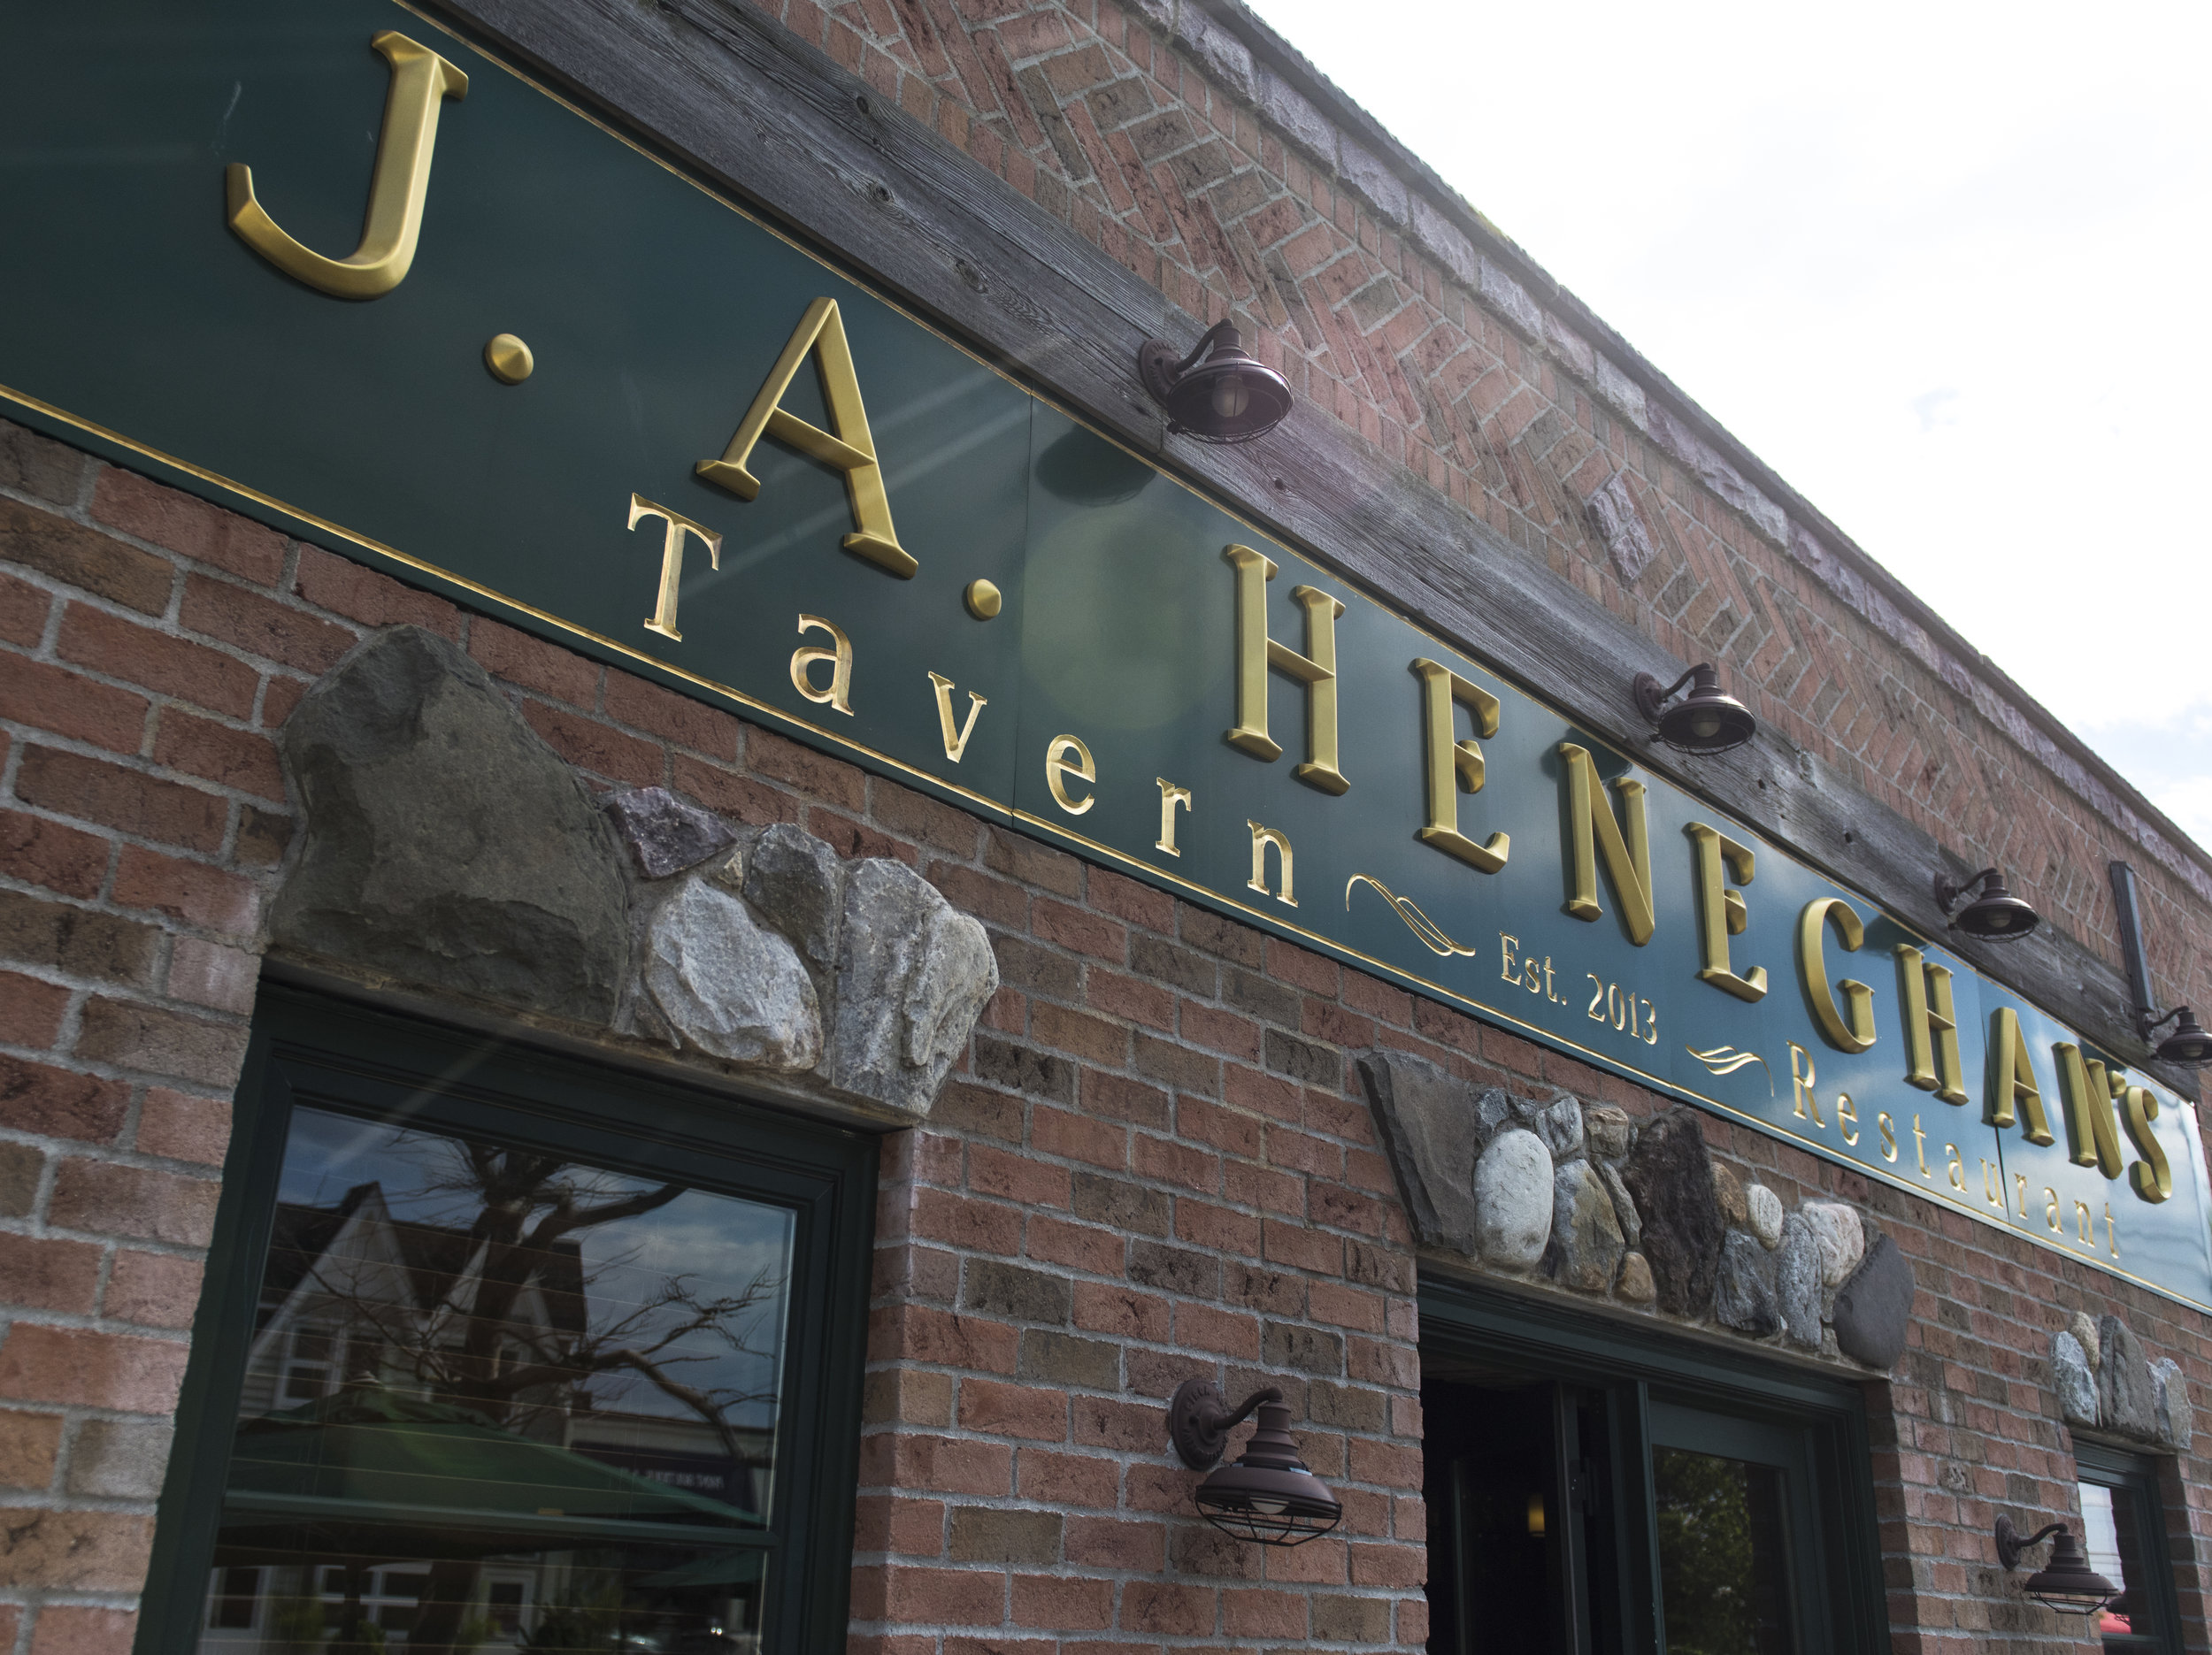 closeu-up-photos-of-j.a-heneghans-resteraunt-name-on-front-of-building.jpg